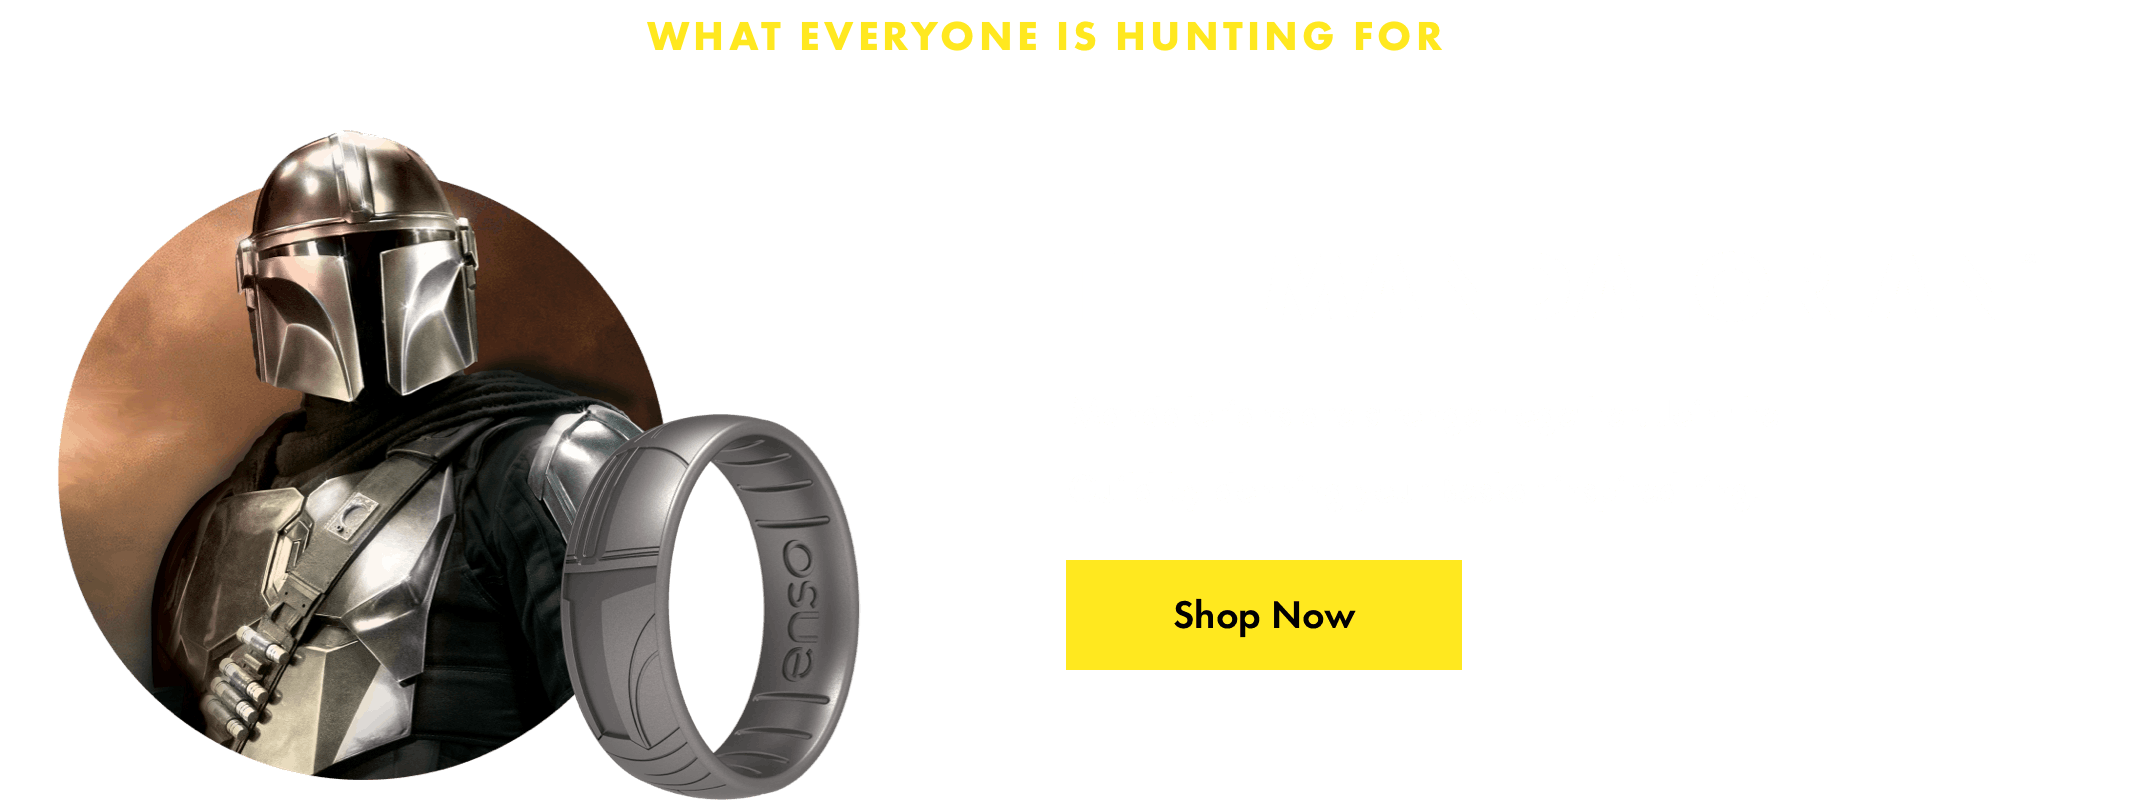 Mandalorian™ ring. Mandalorians are stronger together! Join the guild by donning your Beskar inspired ring. Click here to shop now.